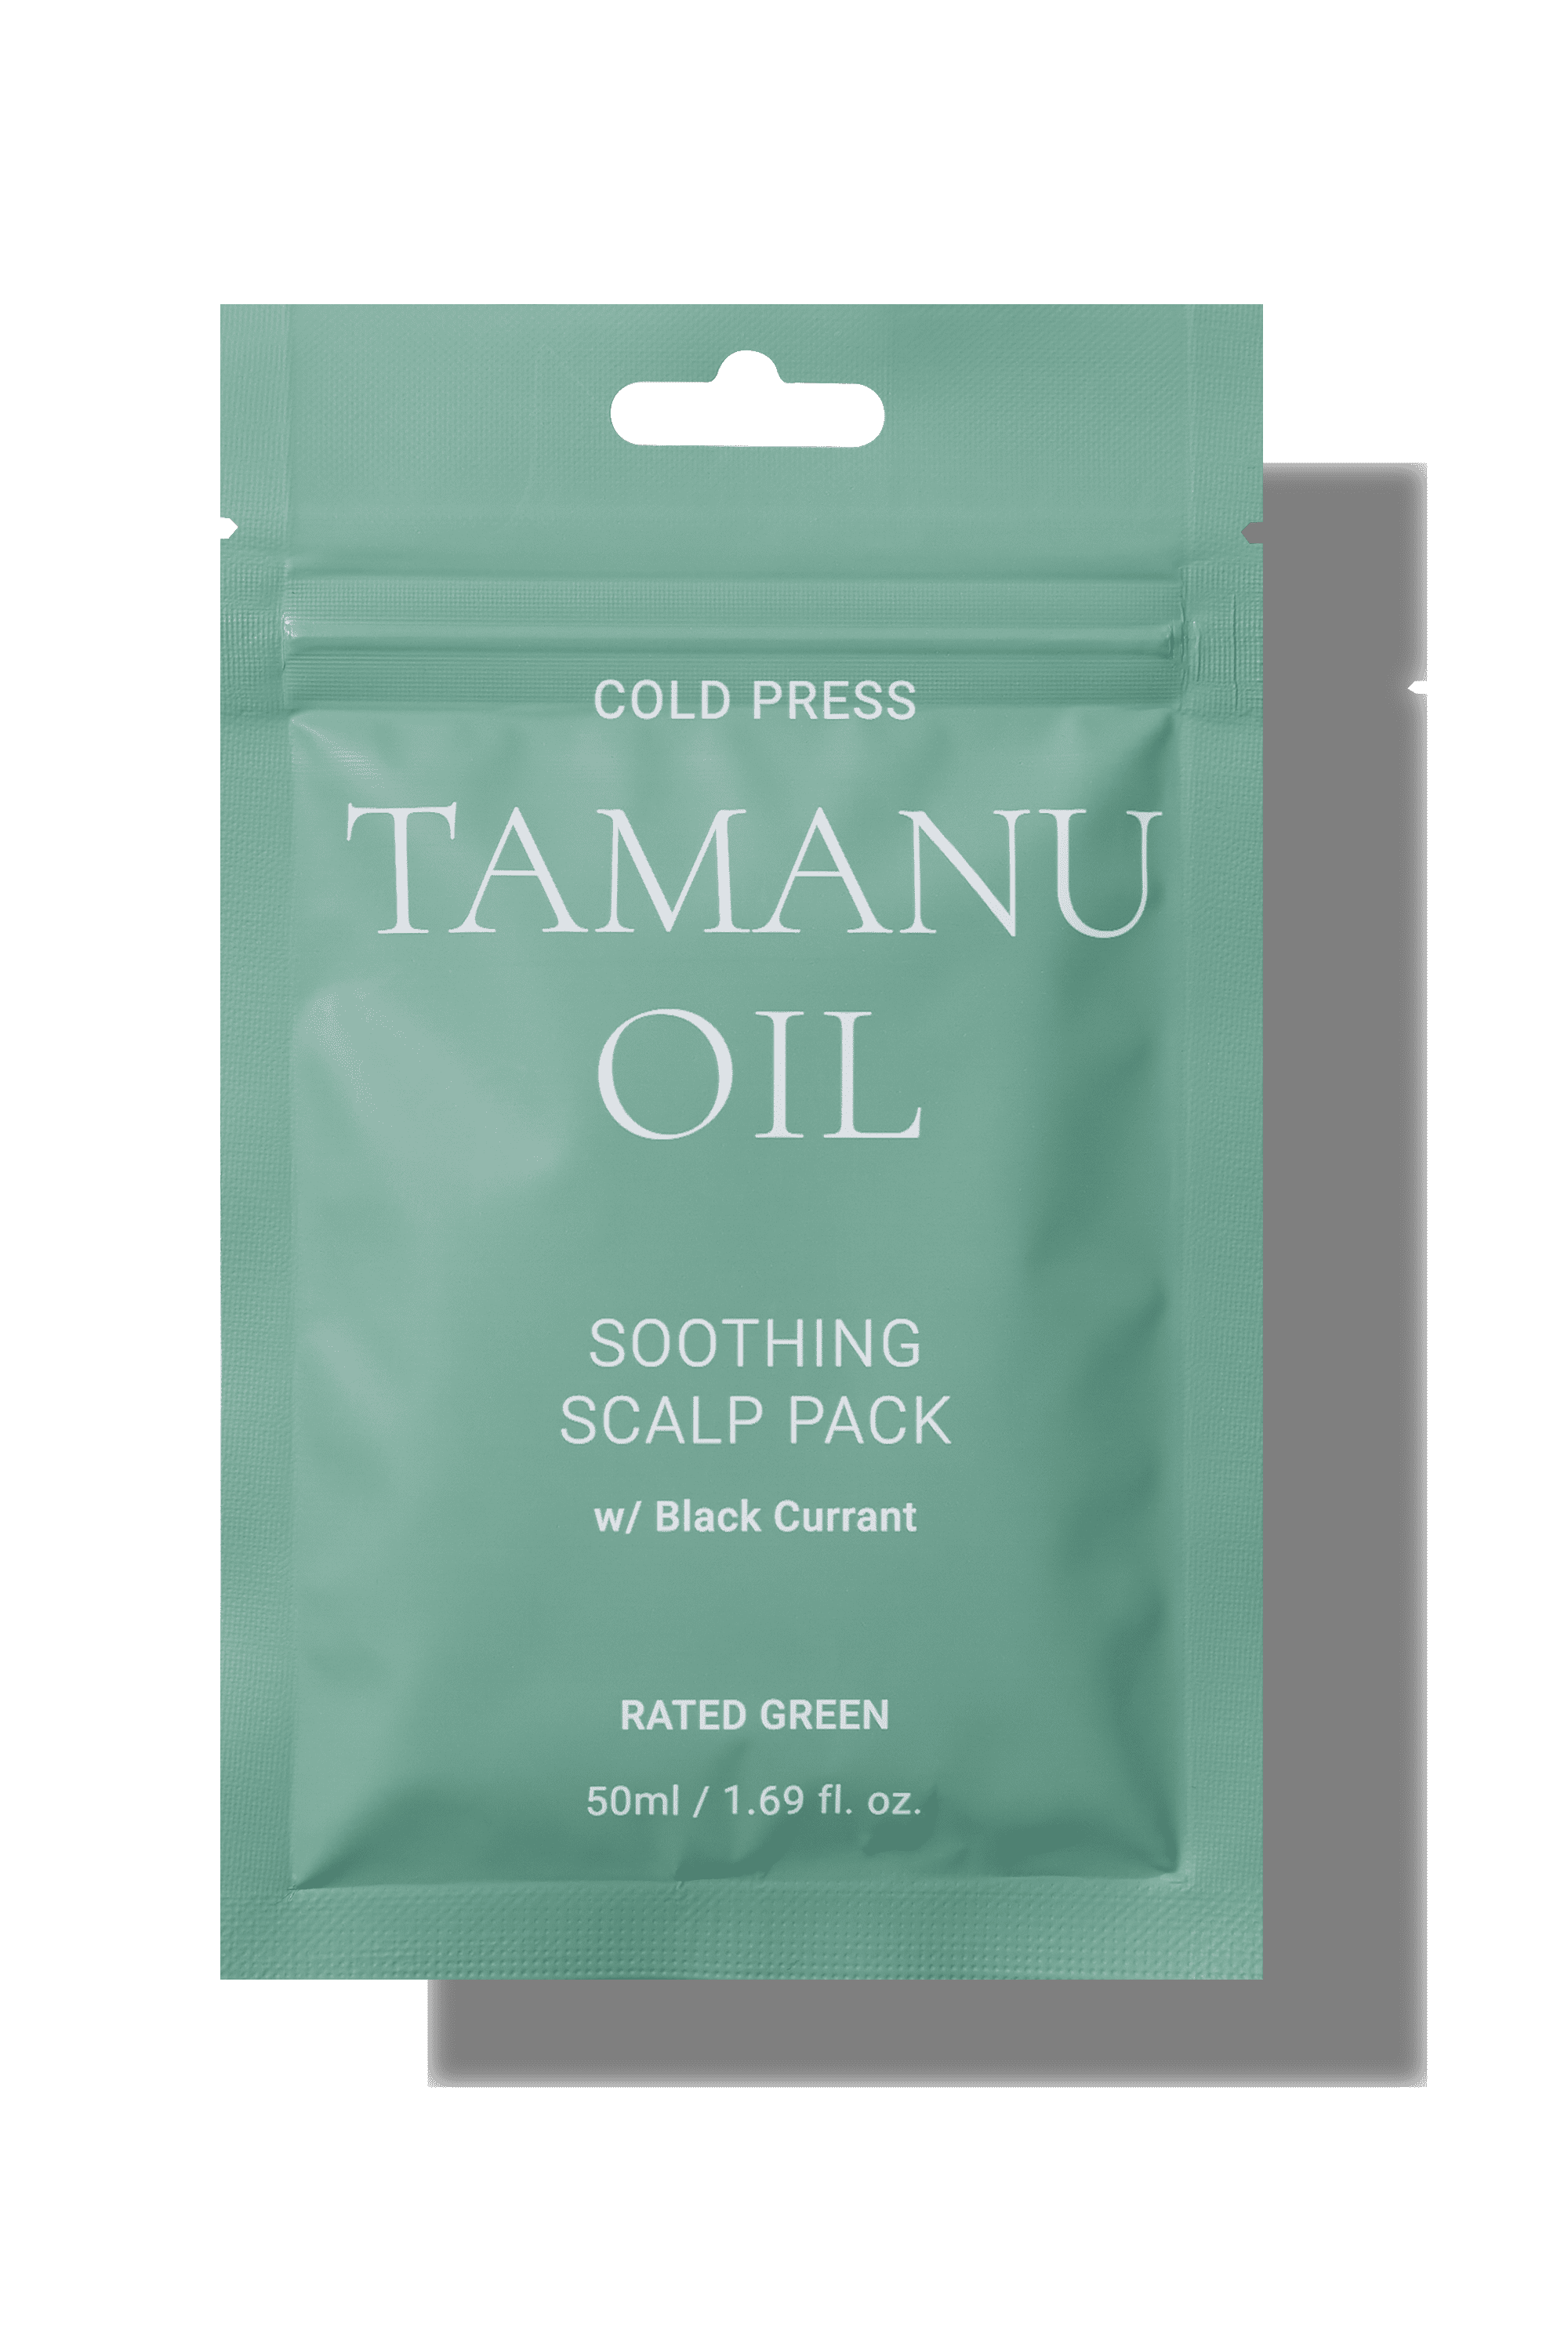 Cold Press Tamanu Oil Soothing Scalp Pack With Blackcurrant_Rated Green